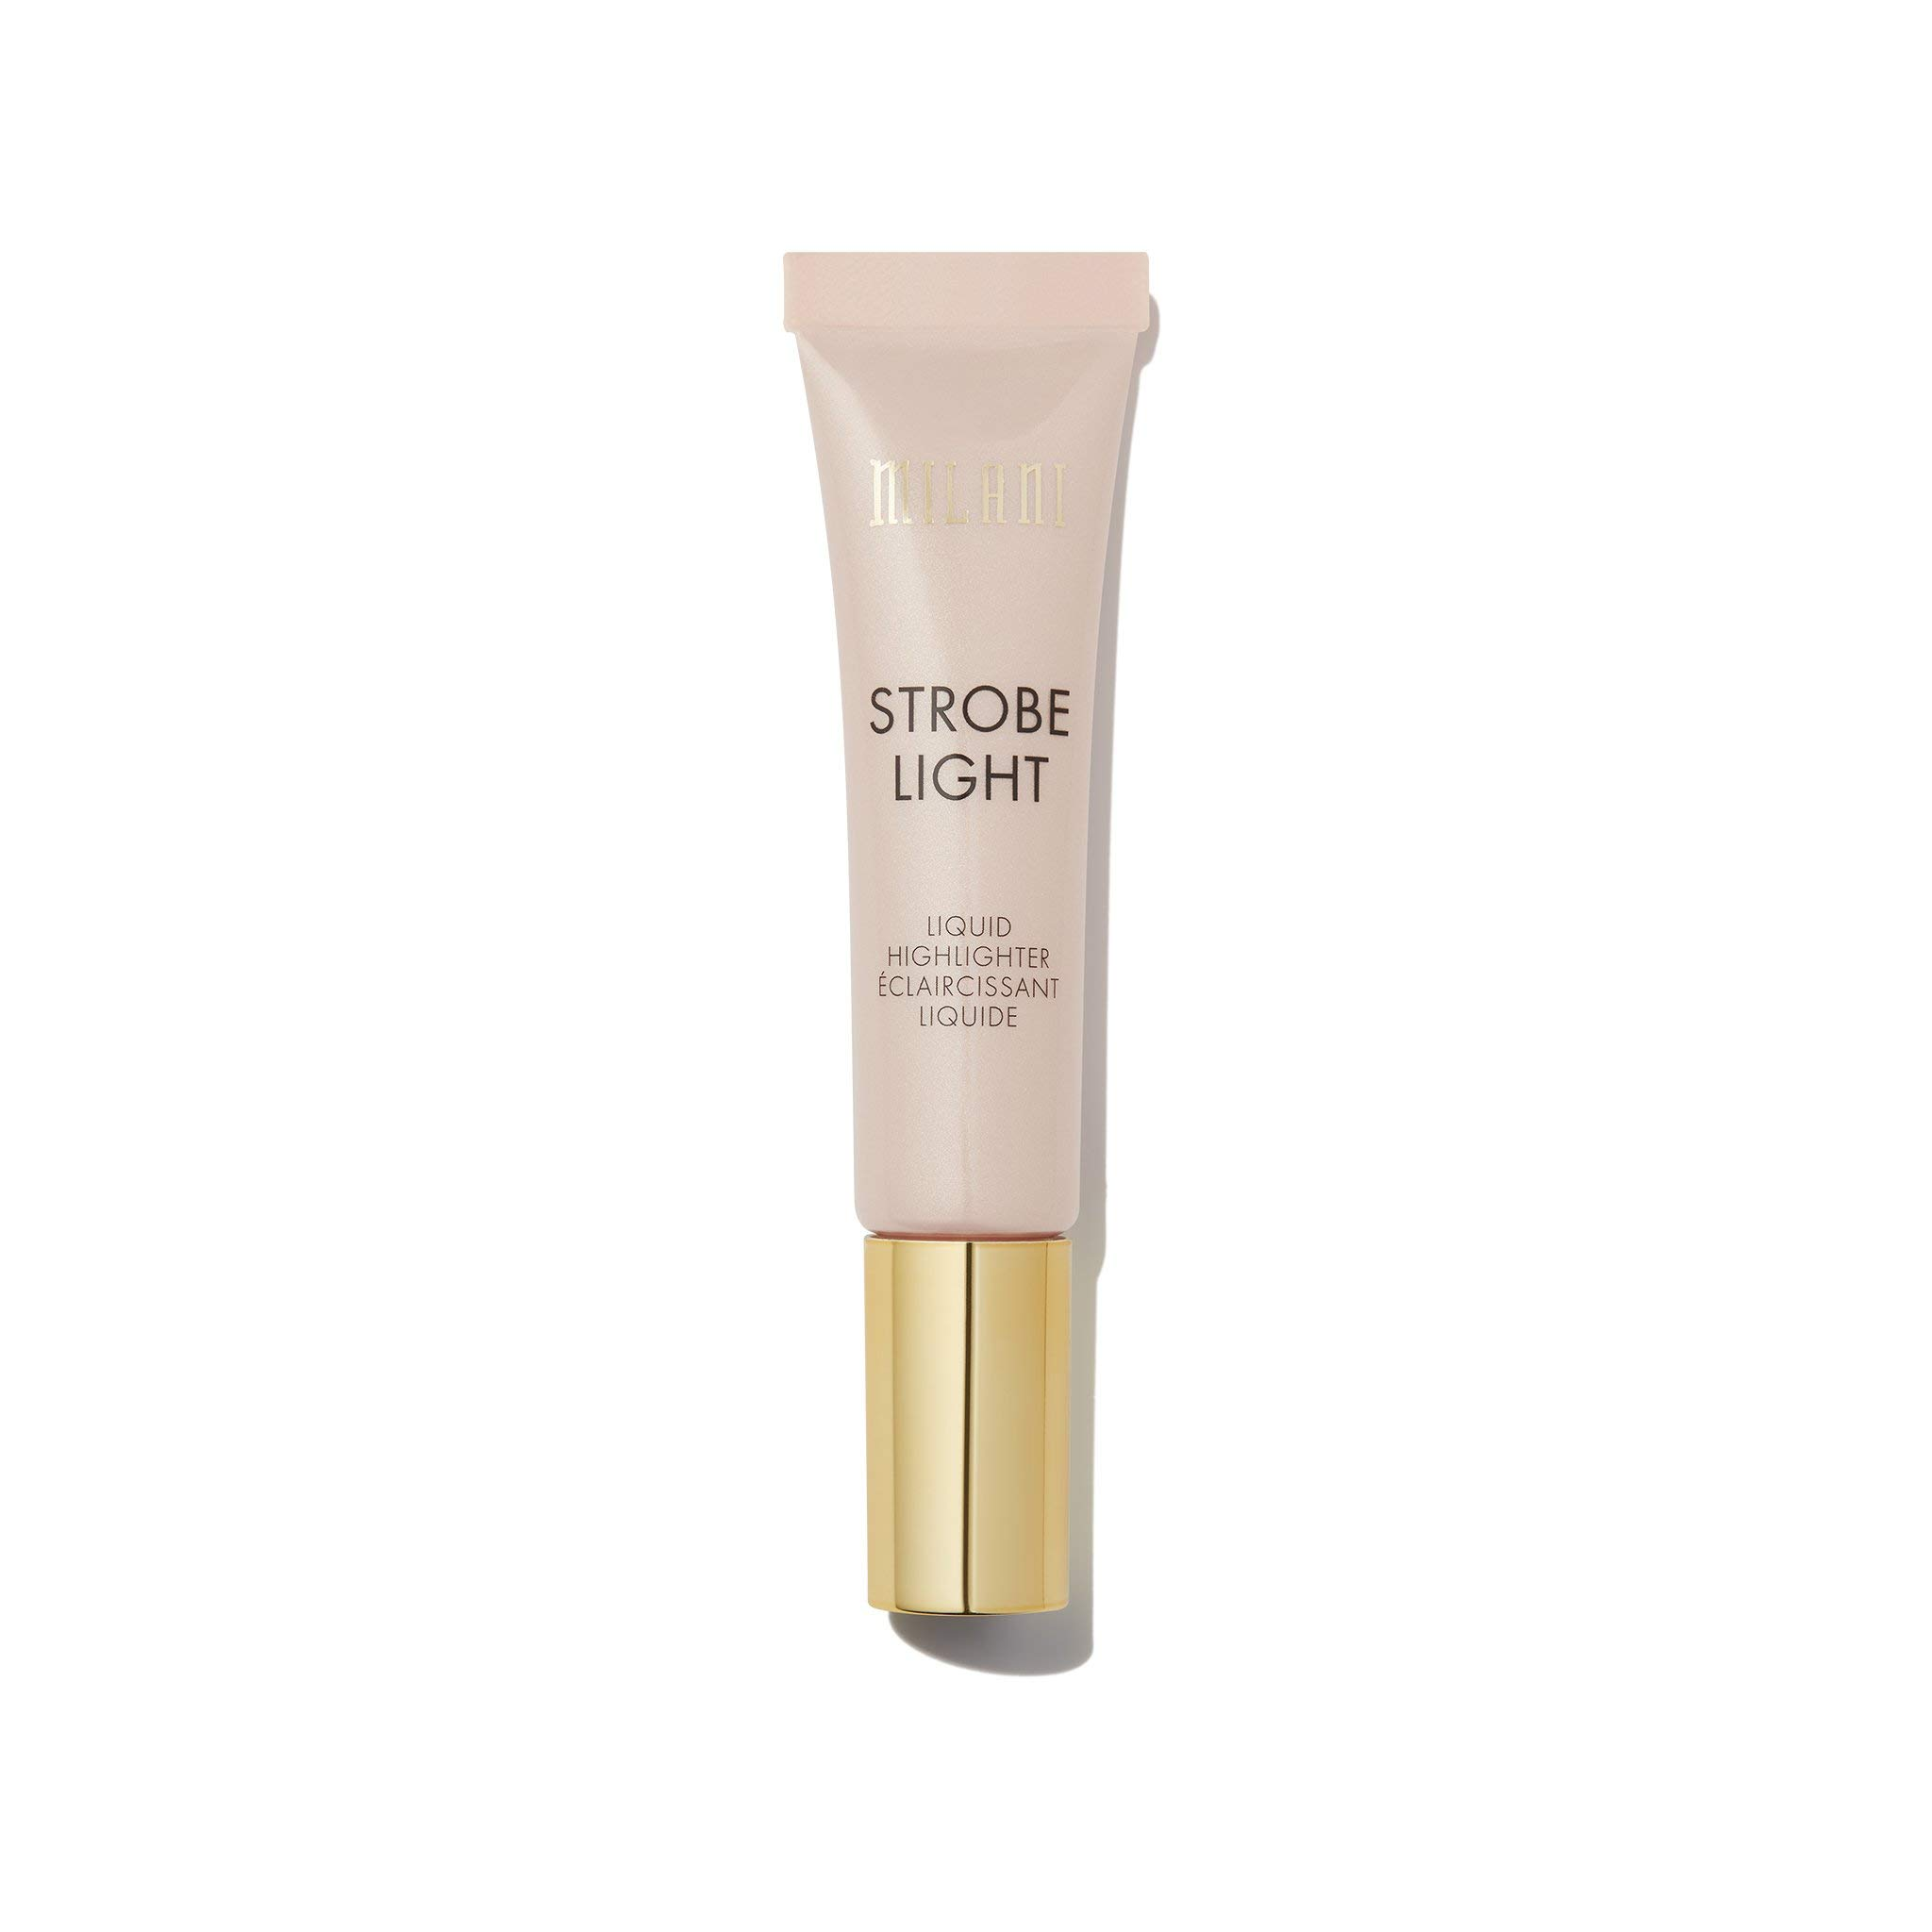 Milani Strobe Light Liquid Highlighter - After Glow (0.42 Fl. Oz.) Cruelty-Free Face Highlighter - Shape, Contour & Highlight Face with Liquid Shimmer Shades